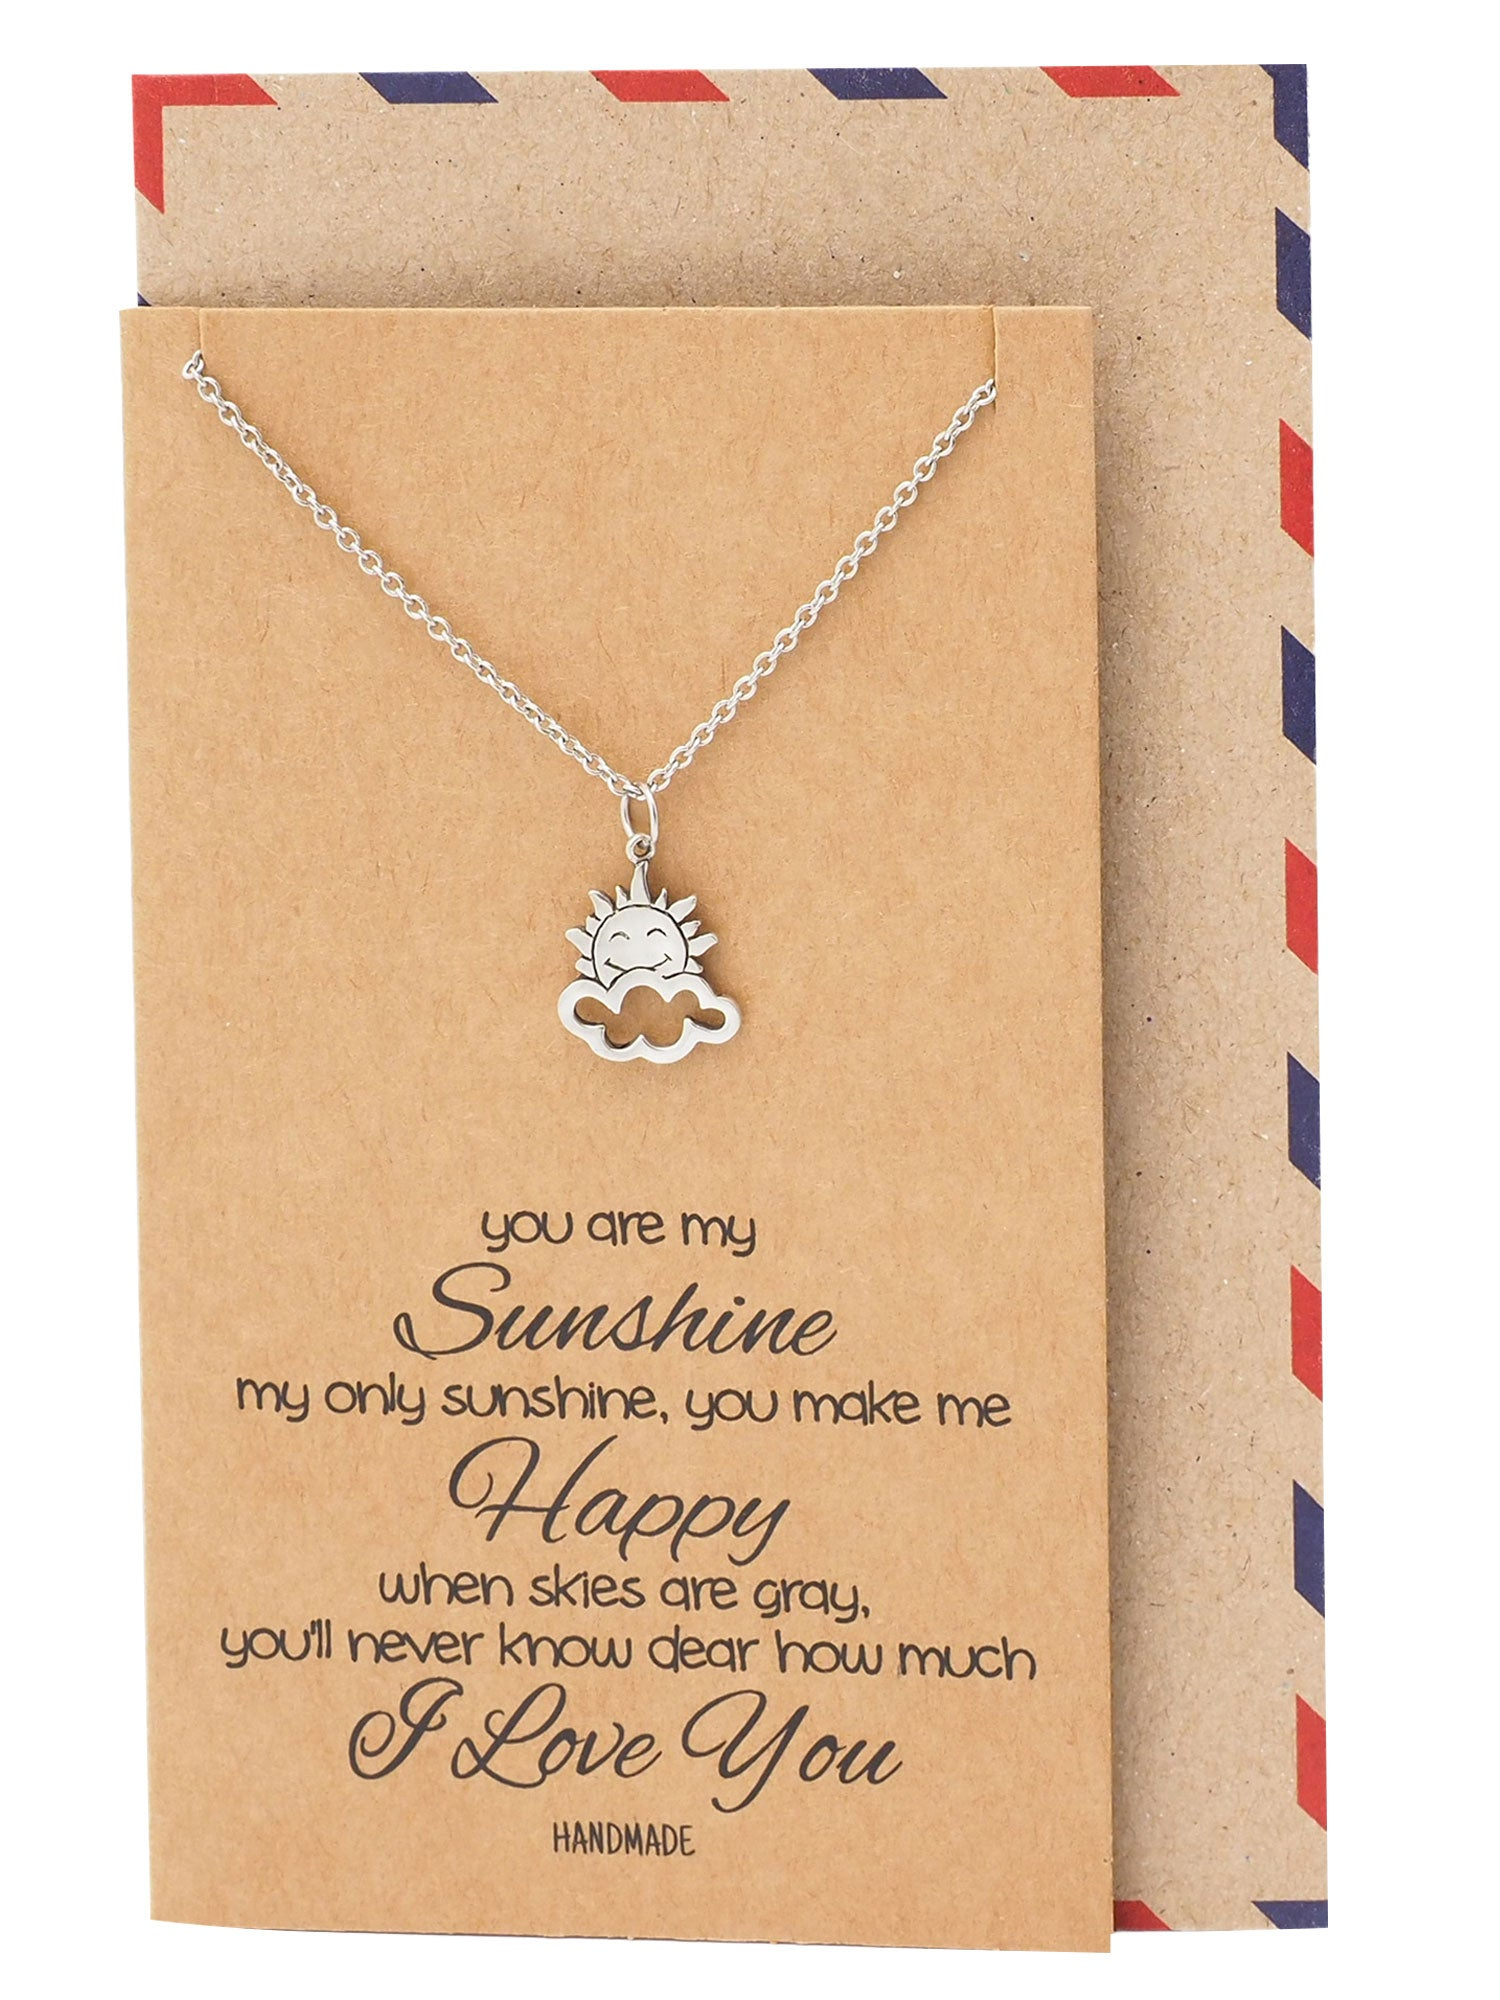 Ellen Sun and Cloud Charms Necklace, You are my Sunshine, Inspirational Quotes with Greeting Card - Quan Jewelry